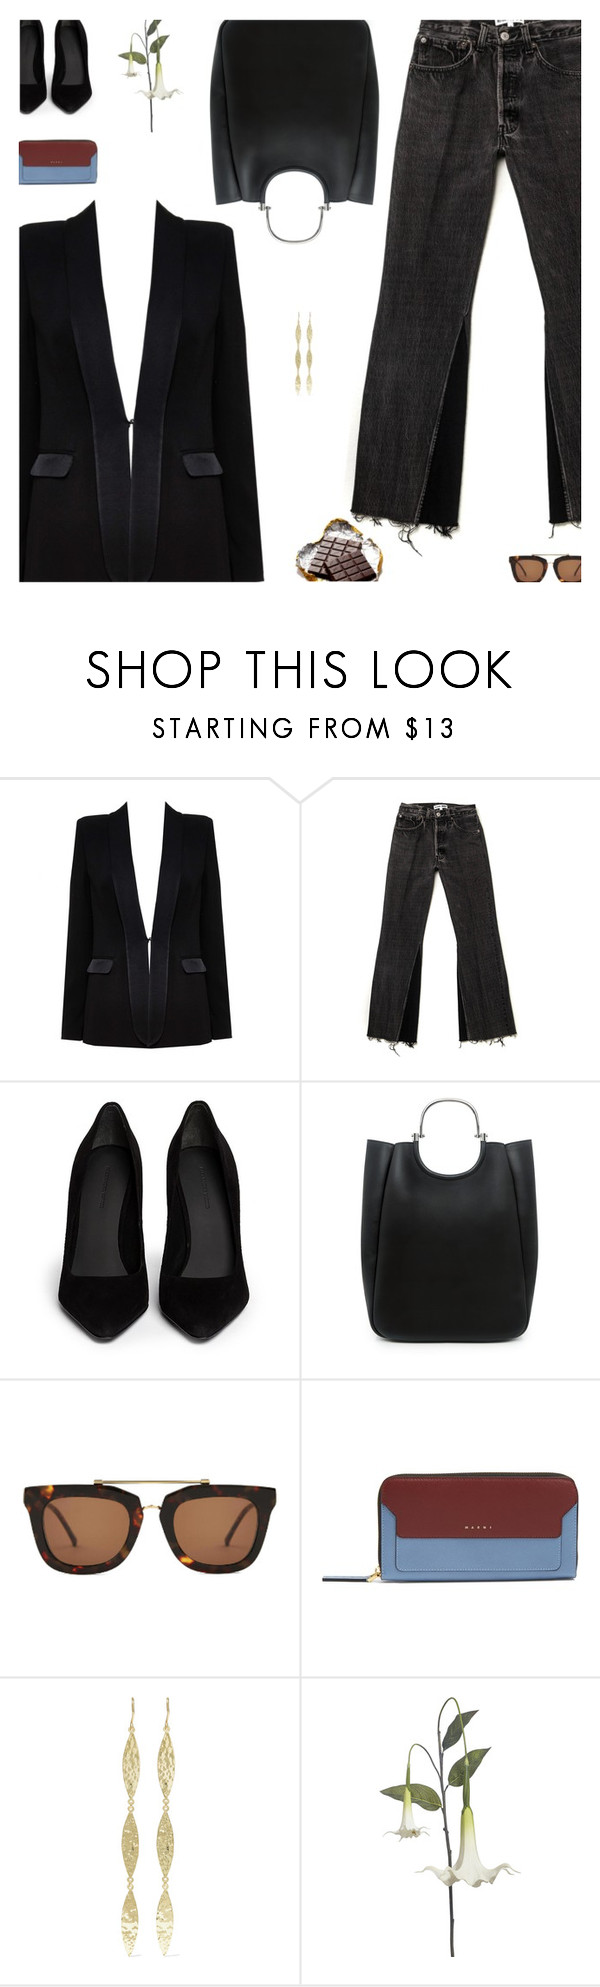 """""""Plainsong"""" by amberelb ❤ liked on Polyvore featuring Alice + Olivia, Alexander Wang, 10 Crosby Derek Lam, Kaibosh, Marni, Jennifer Meyer Jewelry and Pier 1 Imports"""